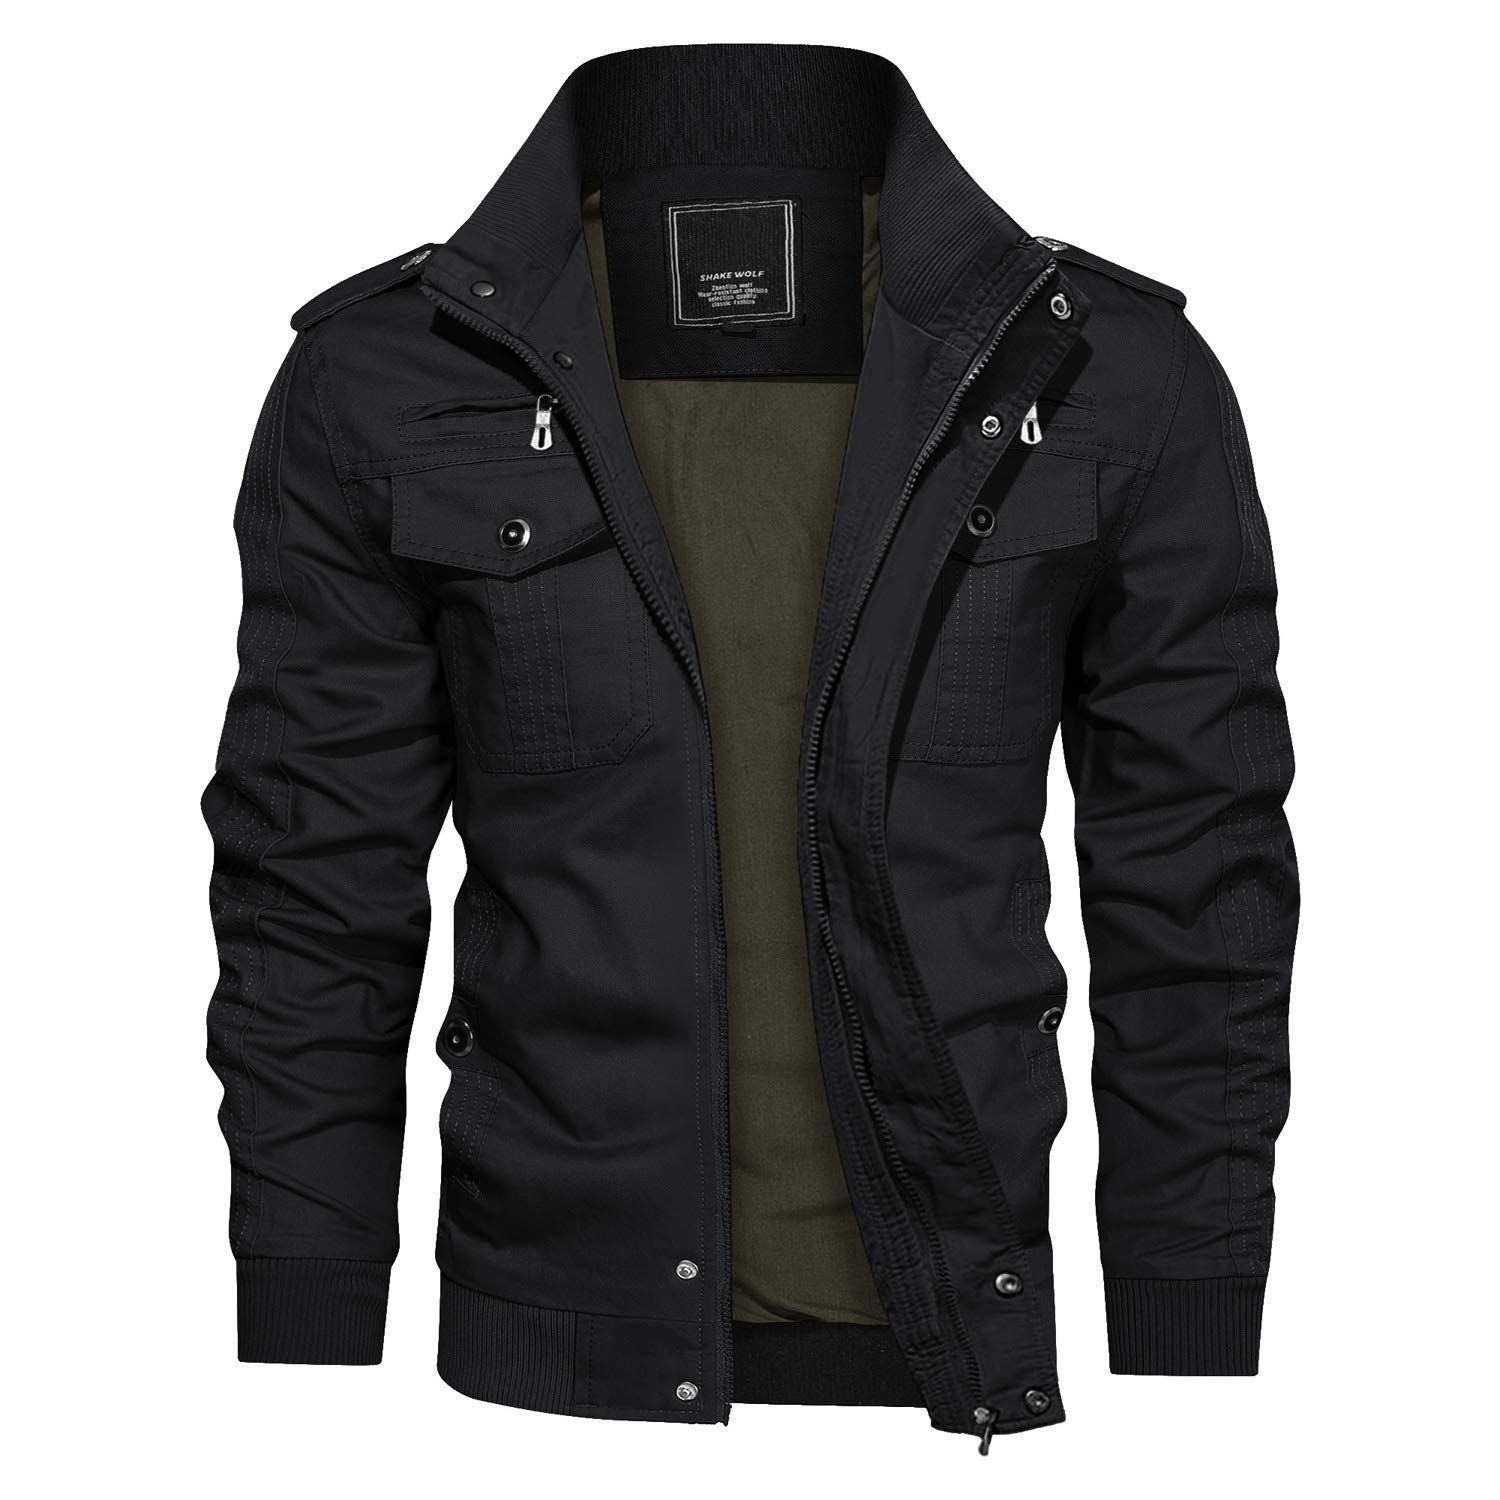 KEFITEVD Mens Winter Jacket Tactical Fall Cotton Warm Lightweight Coat with Removable Hood